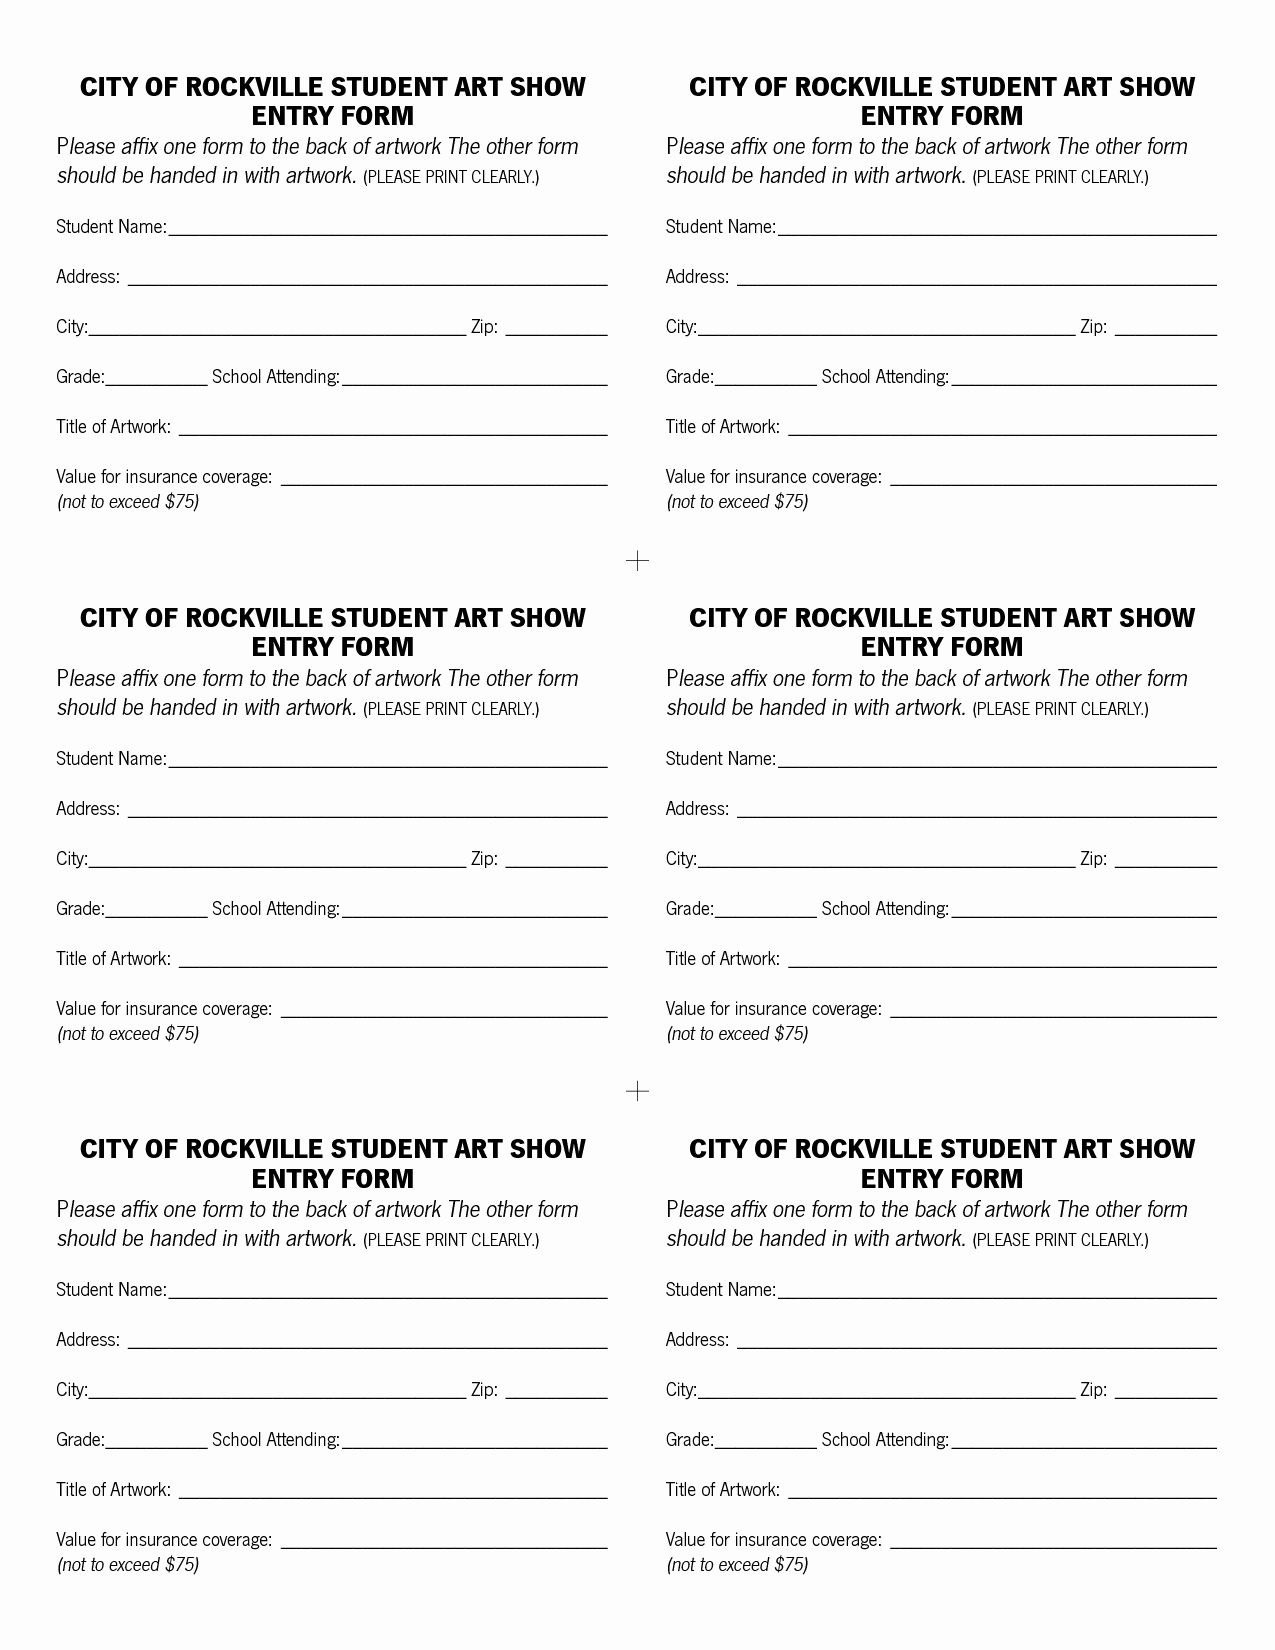 Contest Entry Form Template Lovely Raffle Entry Form Template Templates Word Template Words